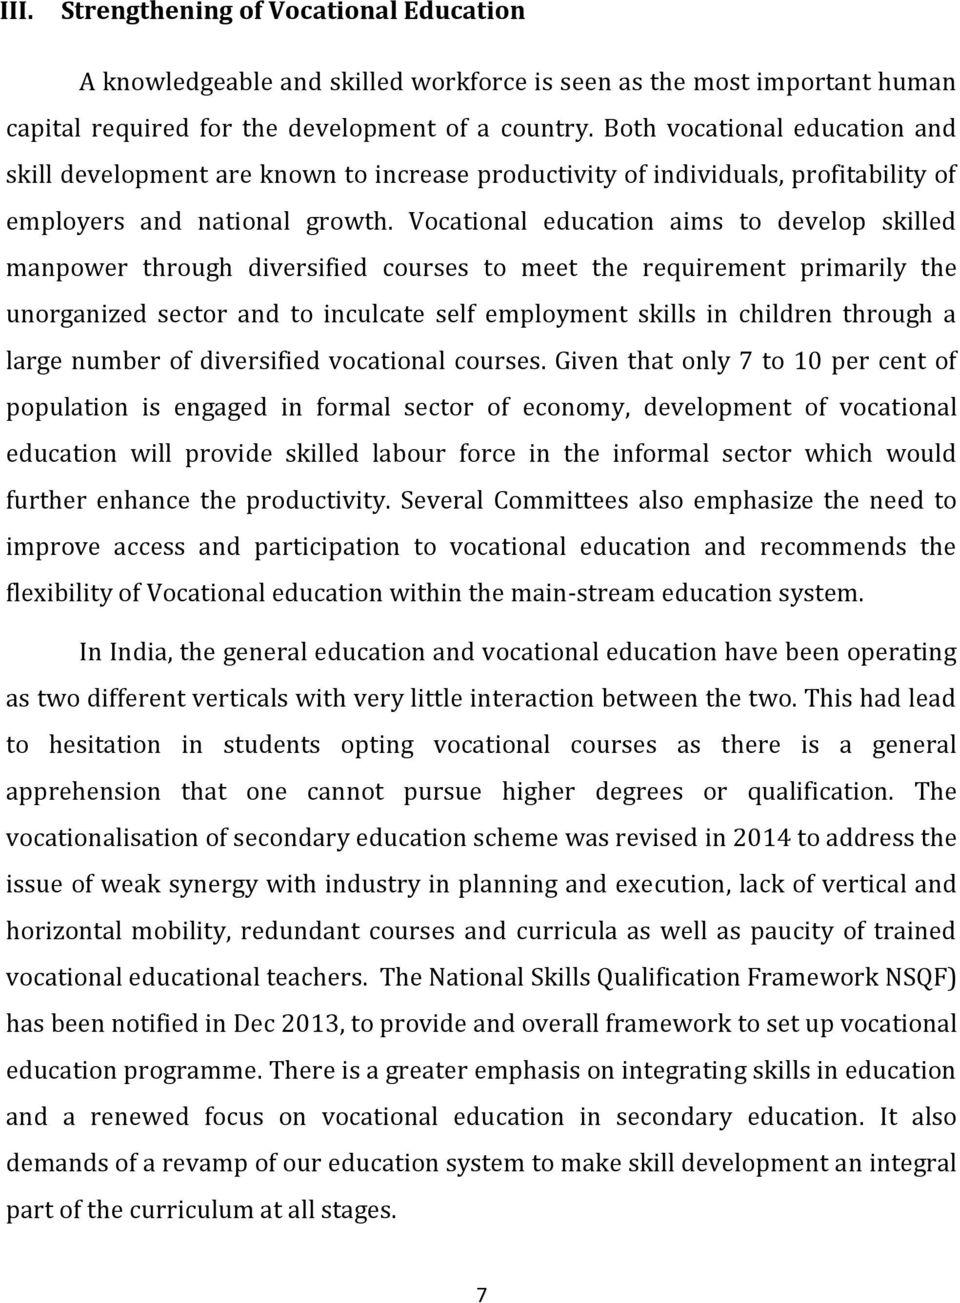 Vocational education aims to develop skilled manpower through diversified courses to meet the requirement primarily the unorganized sector and to inculcate self employment skills in children through